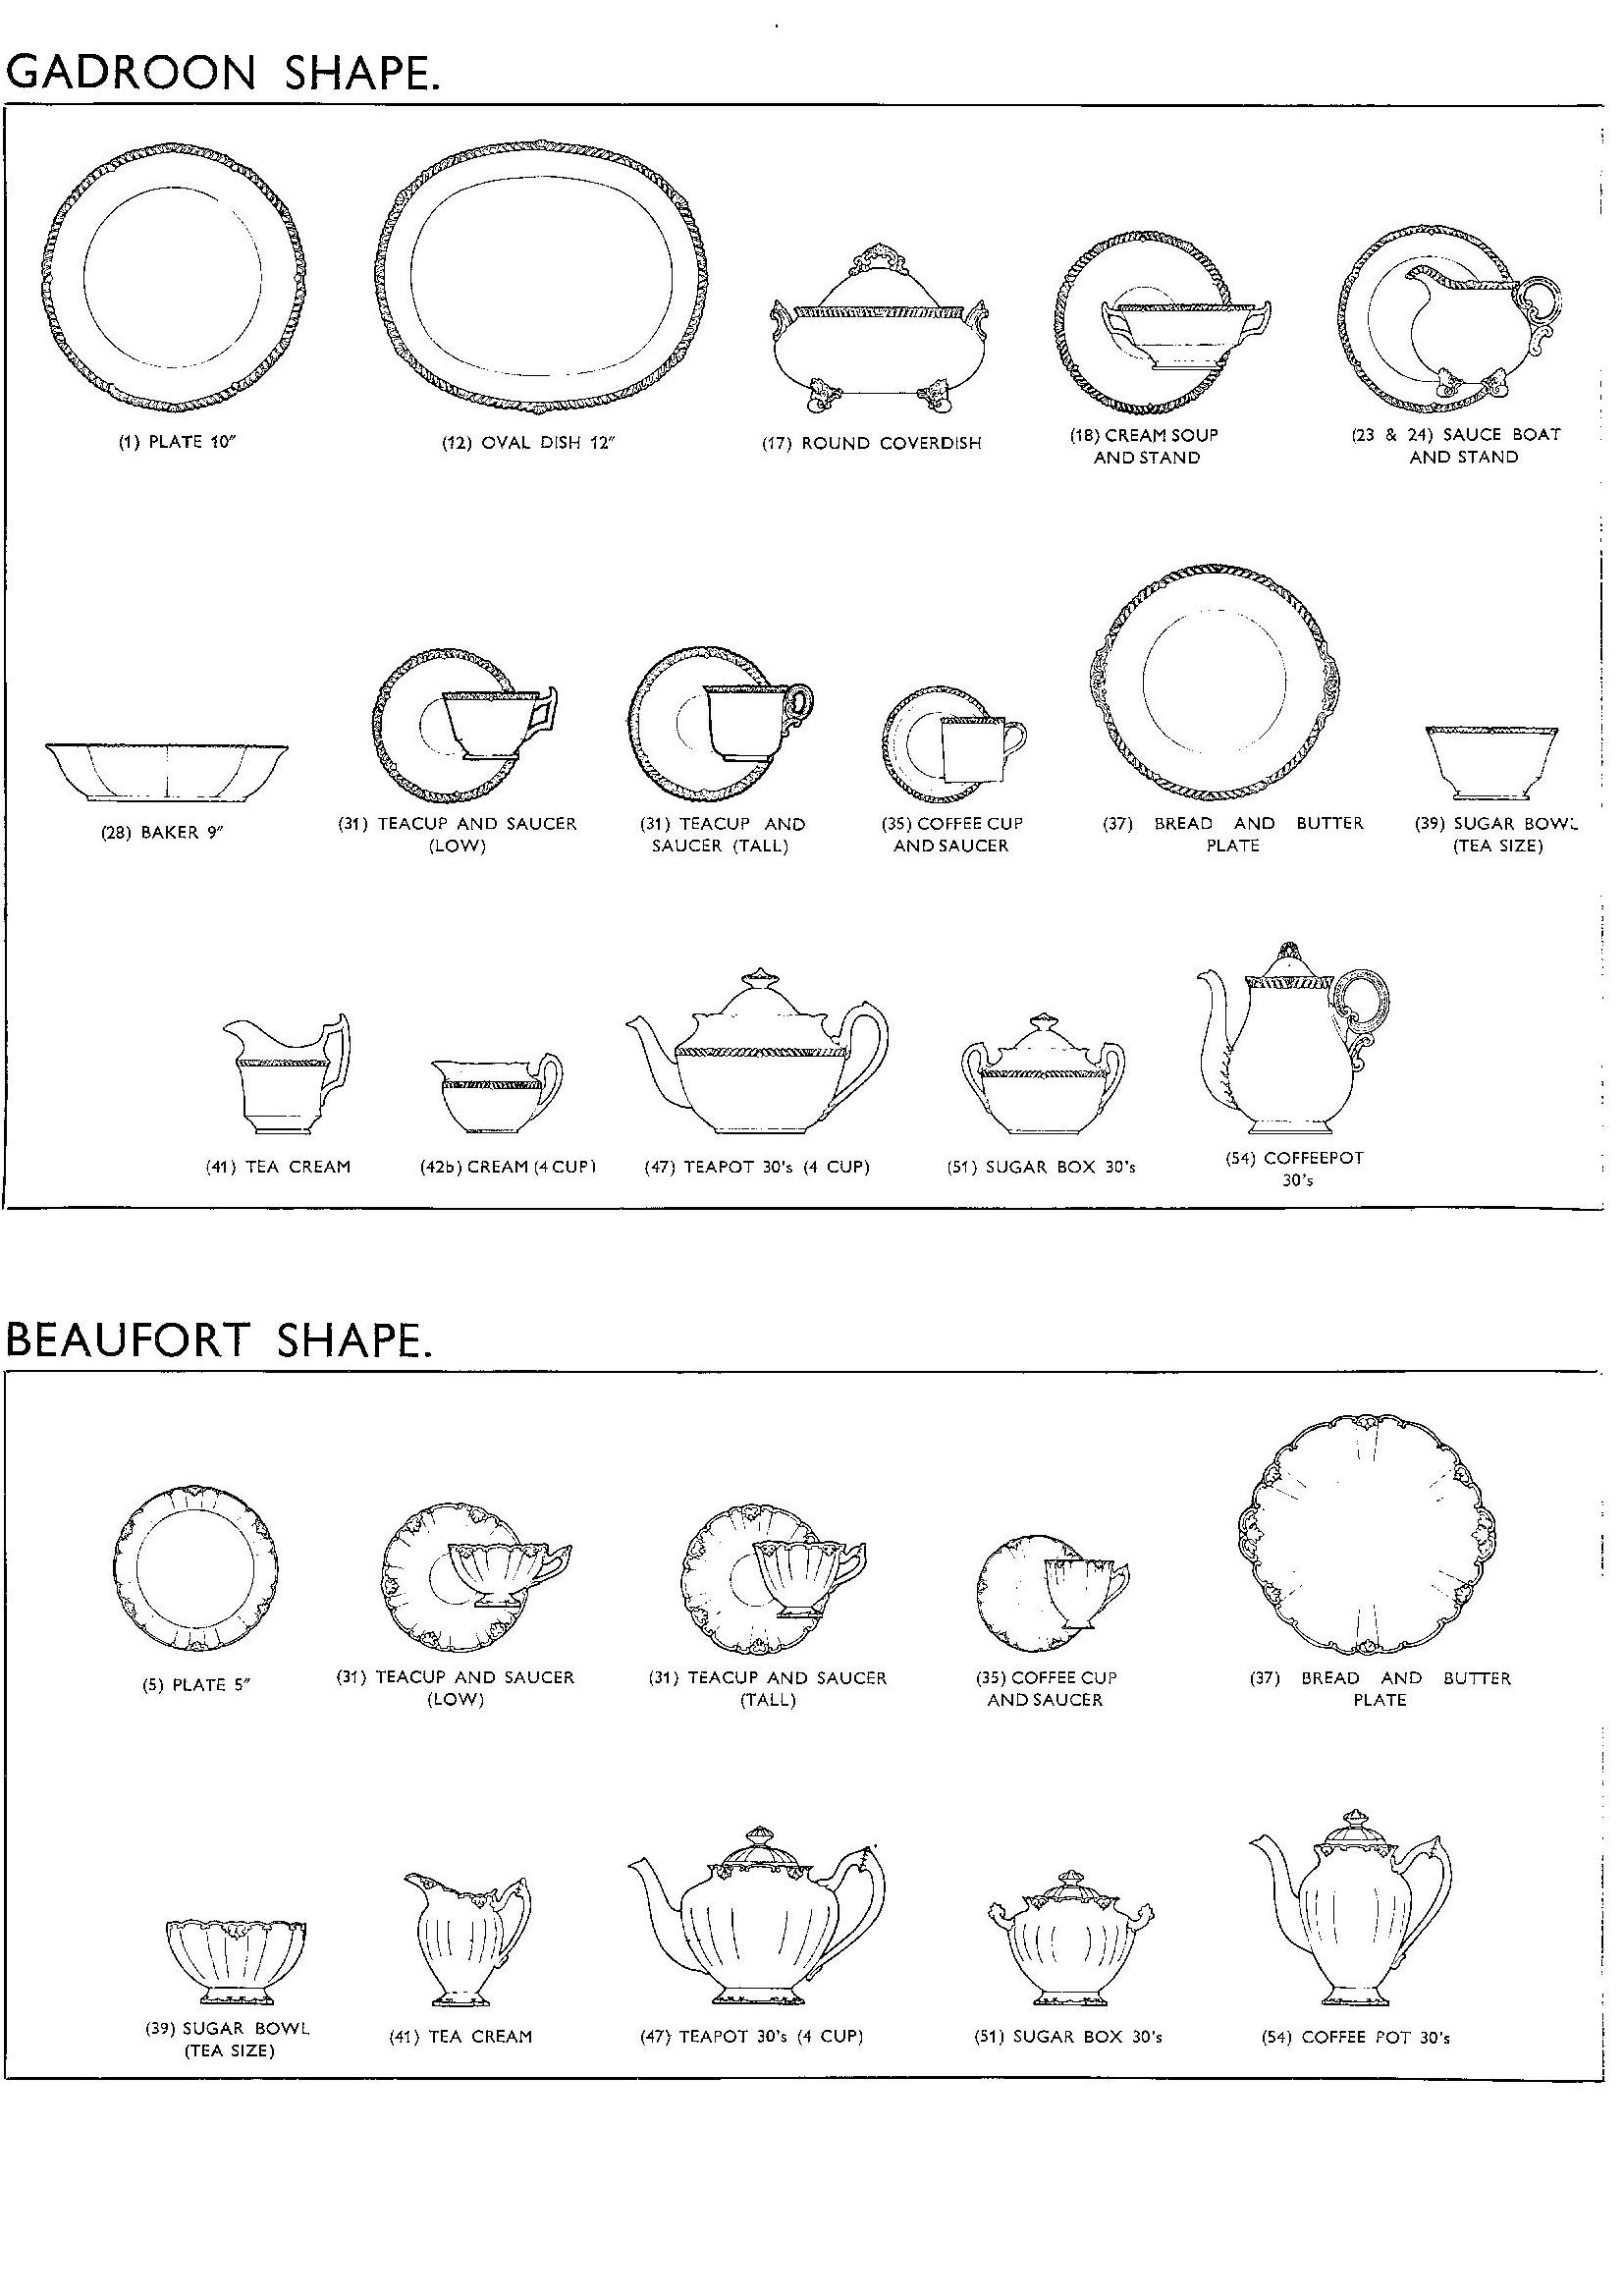 royal-crown-derby-outline-sketches-of-shapes-1955-page-6